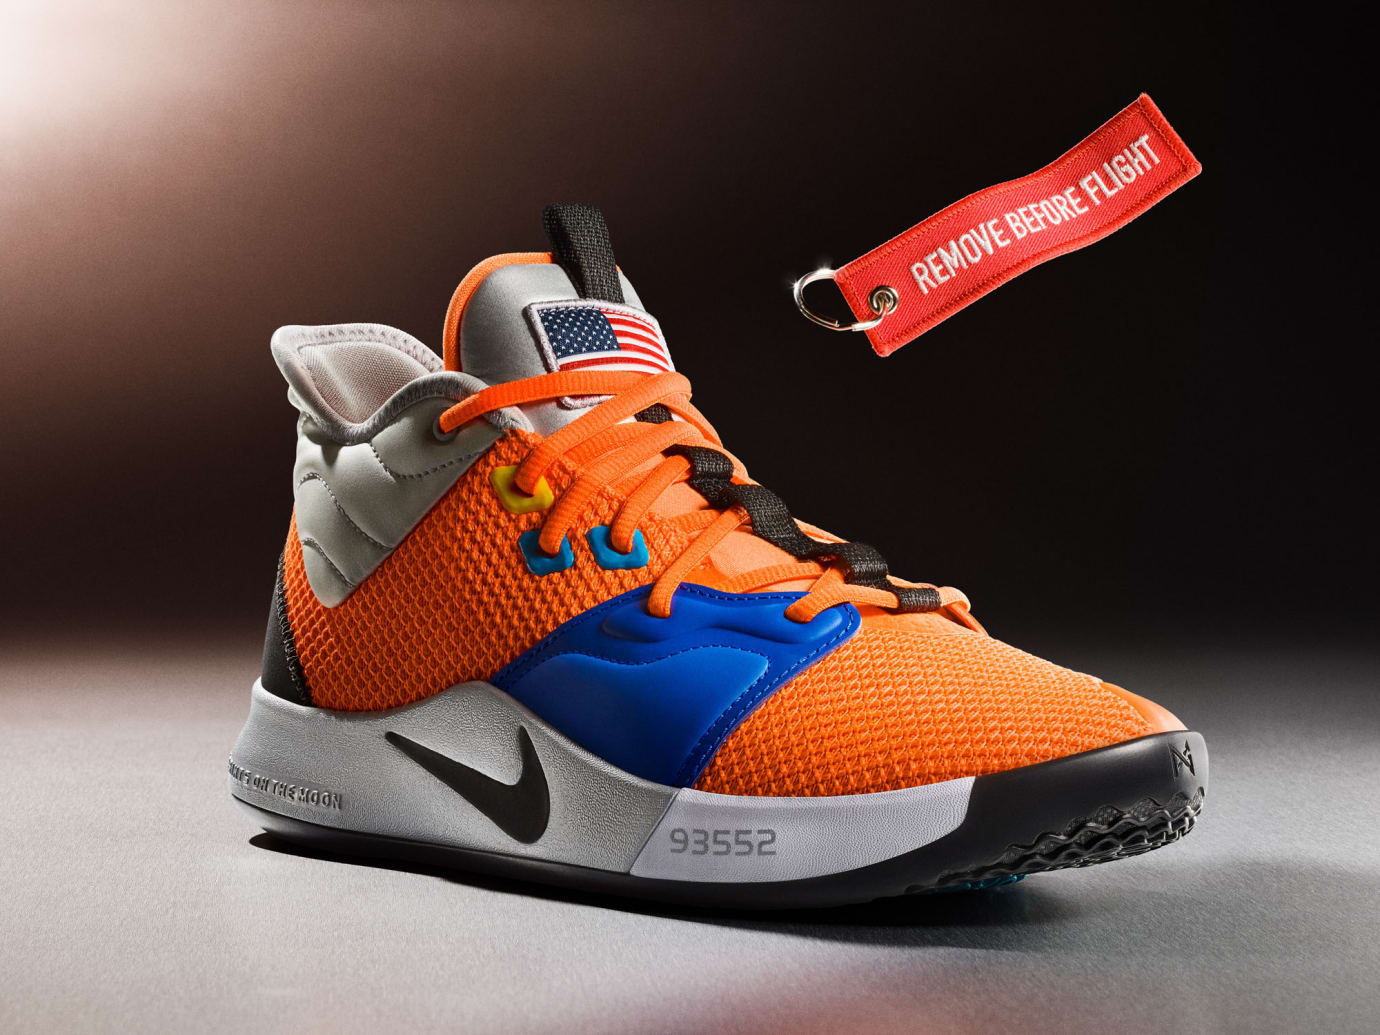 0db7f7b34976 Nike PG 3 NASA Release Date CI2666-800 Beauty